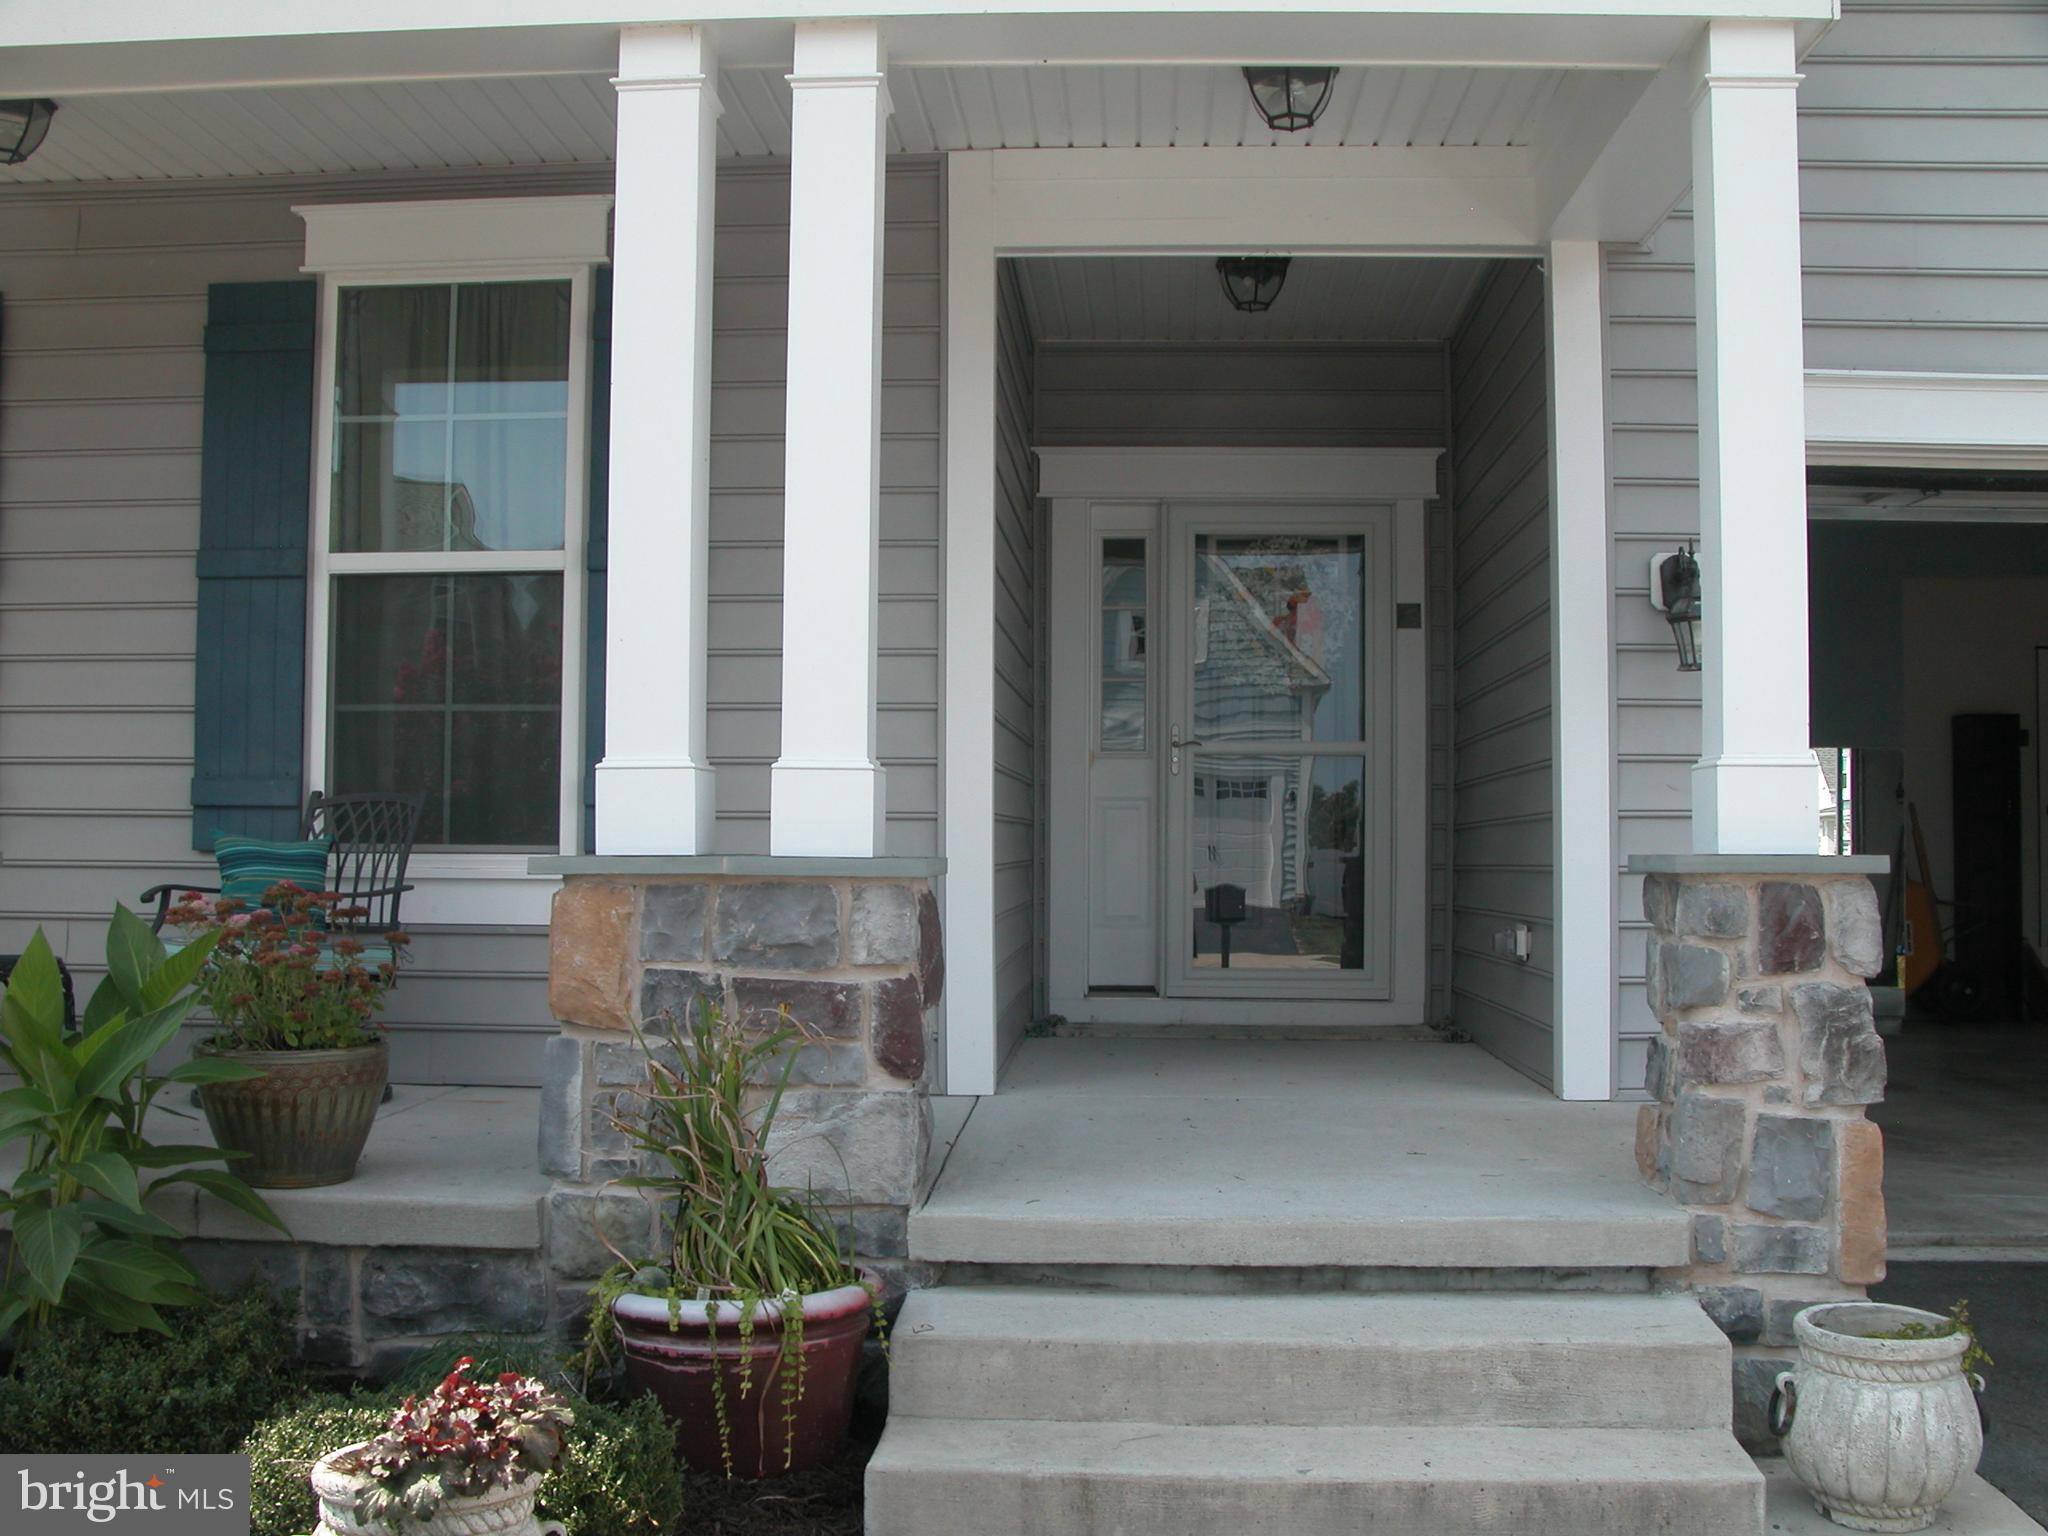 Lovely open floor plan with private back yard. Gorgeous entrance  with white tile that looks like marble , Vaulted ceiling in living room. Kitchen has large center island with granite counter tops.This home has 3 bedrooms with private bath in each. First floor master suite has soaking tub and separate shower, Granite counter tops,2 walk in closets. Den on the first floor can be a bedroom which would make this a 4 bedroom home it has french doors. Second floor has large bedroom with private bath and loft sitting area. Large walk in attic as well that could be finished off for more livable space  .Garage is 19.3x27 extra long and the crawl space is conditioned with dehumidifier and sump pump. Lovely front porch for sitting and people watching, Covered deck off the back of the home that looks out to the farm across the way and you can watch the deer and birds. Sun room off the kitchen leads to this space . Community has 2 pools one with a splash zone and a crab deck also kayaking in the pond. shuttle to the beach and many walking trails and a gym. Great community!!!!! Showings to start on September 15th